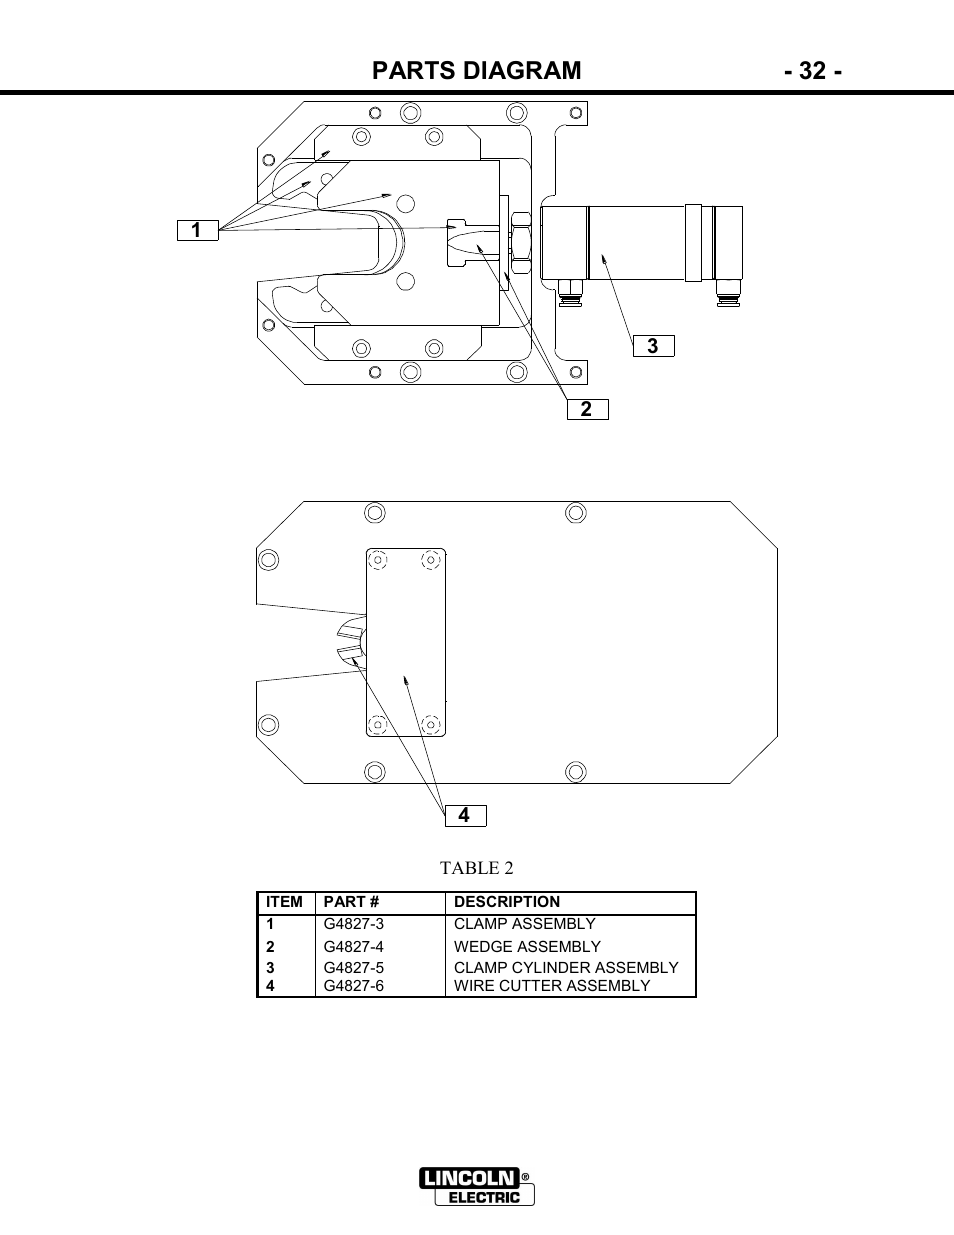 hight resolution of parts diagram 32 lincoln electric im866 power ream user manual page 32 36